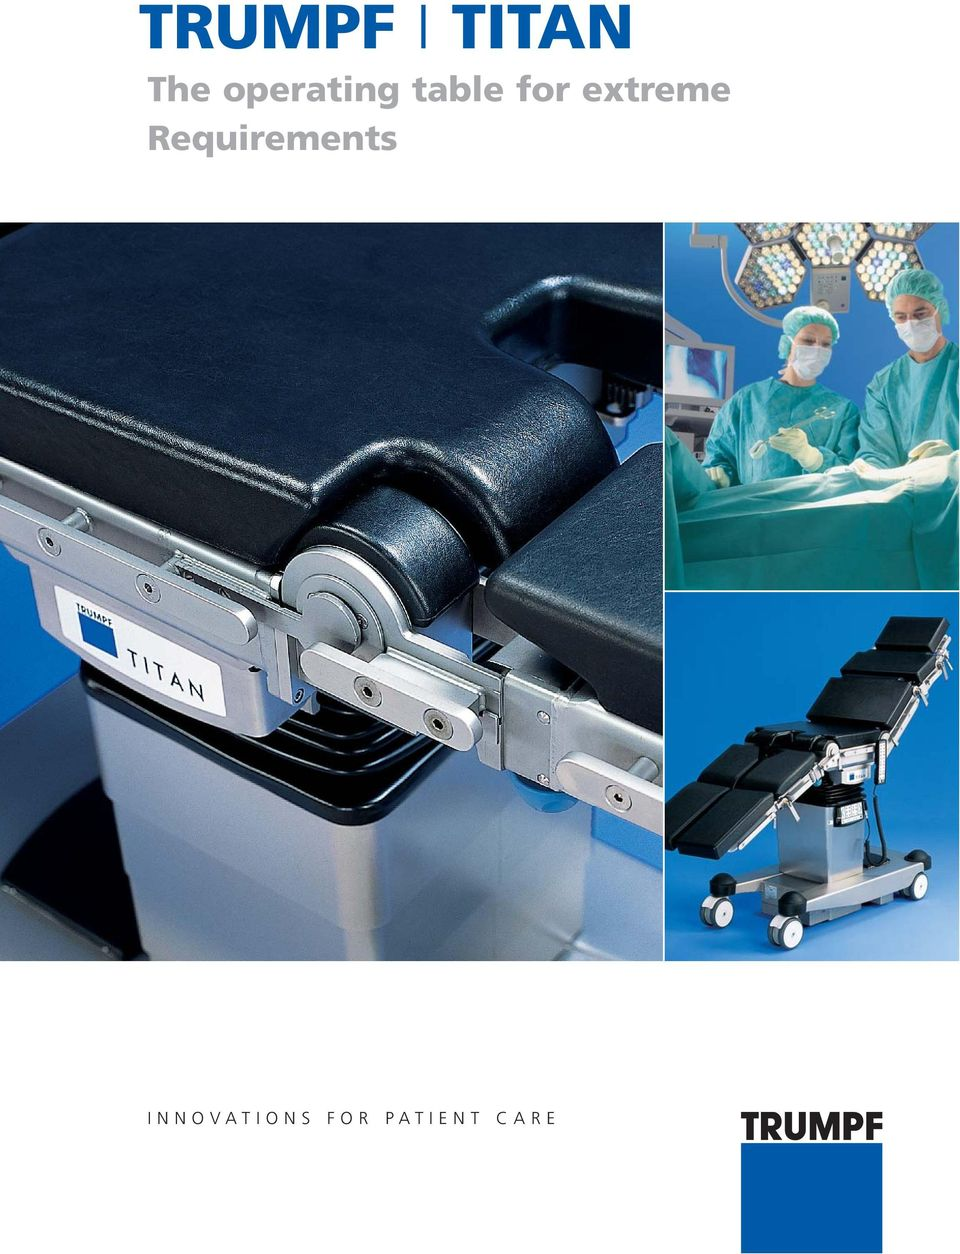 TRUMPF I TITAN The operating table for extreme Requirements